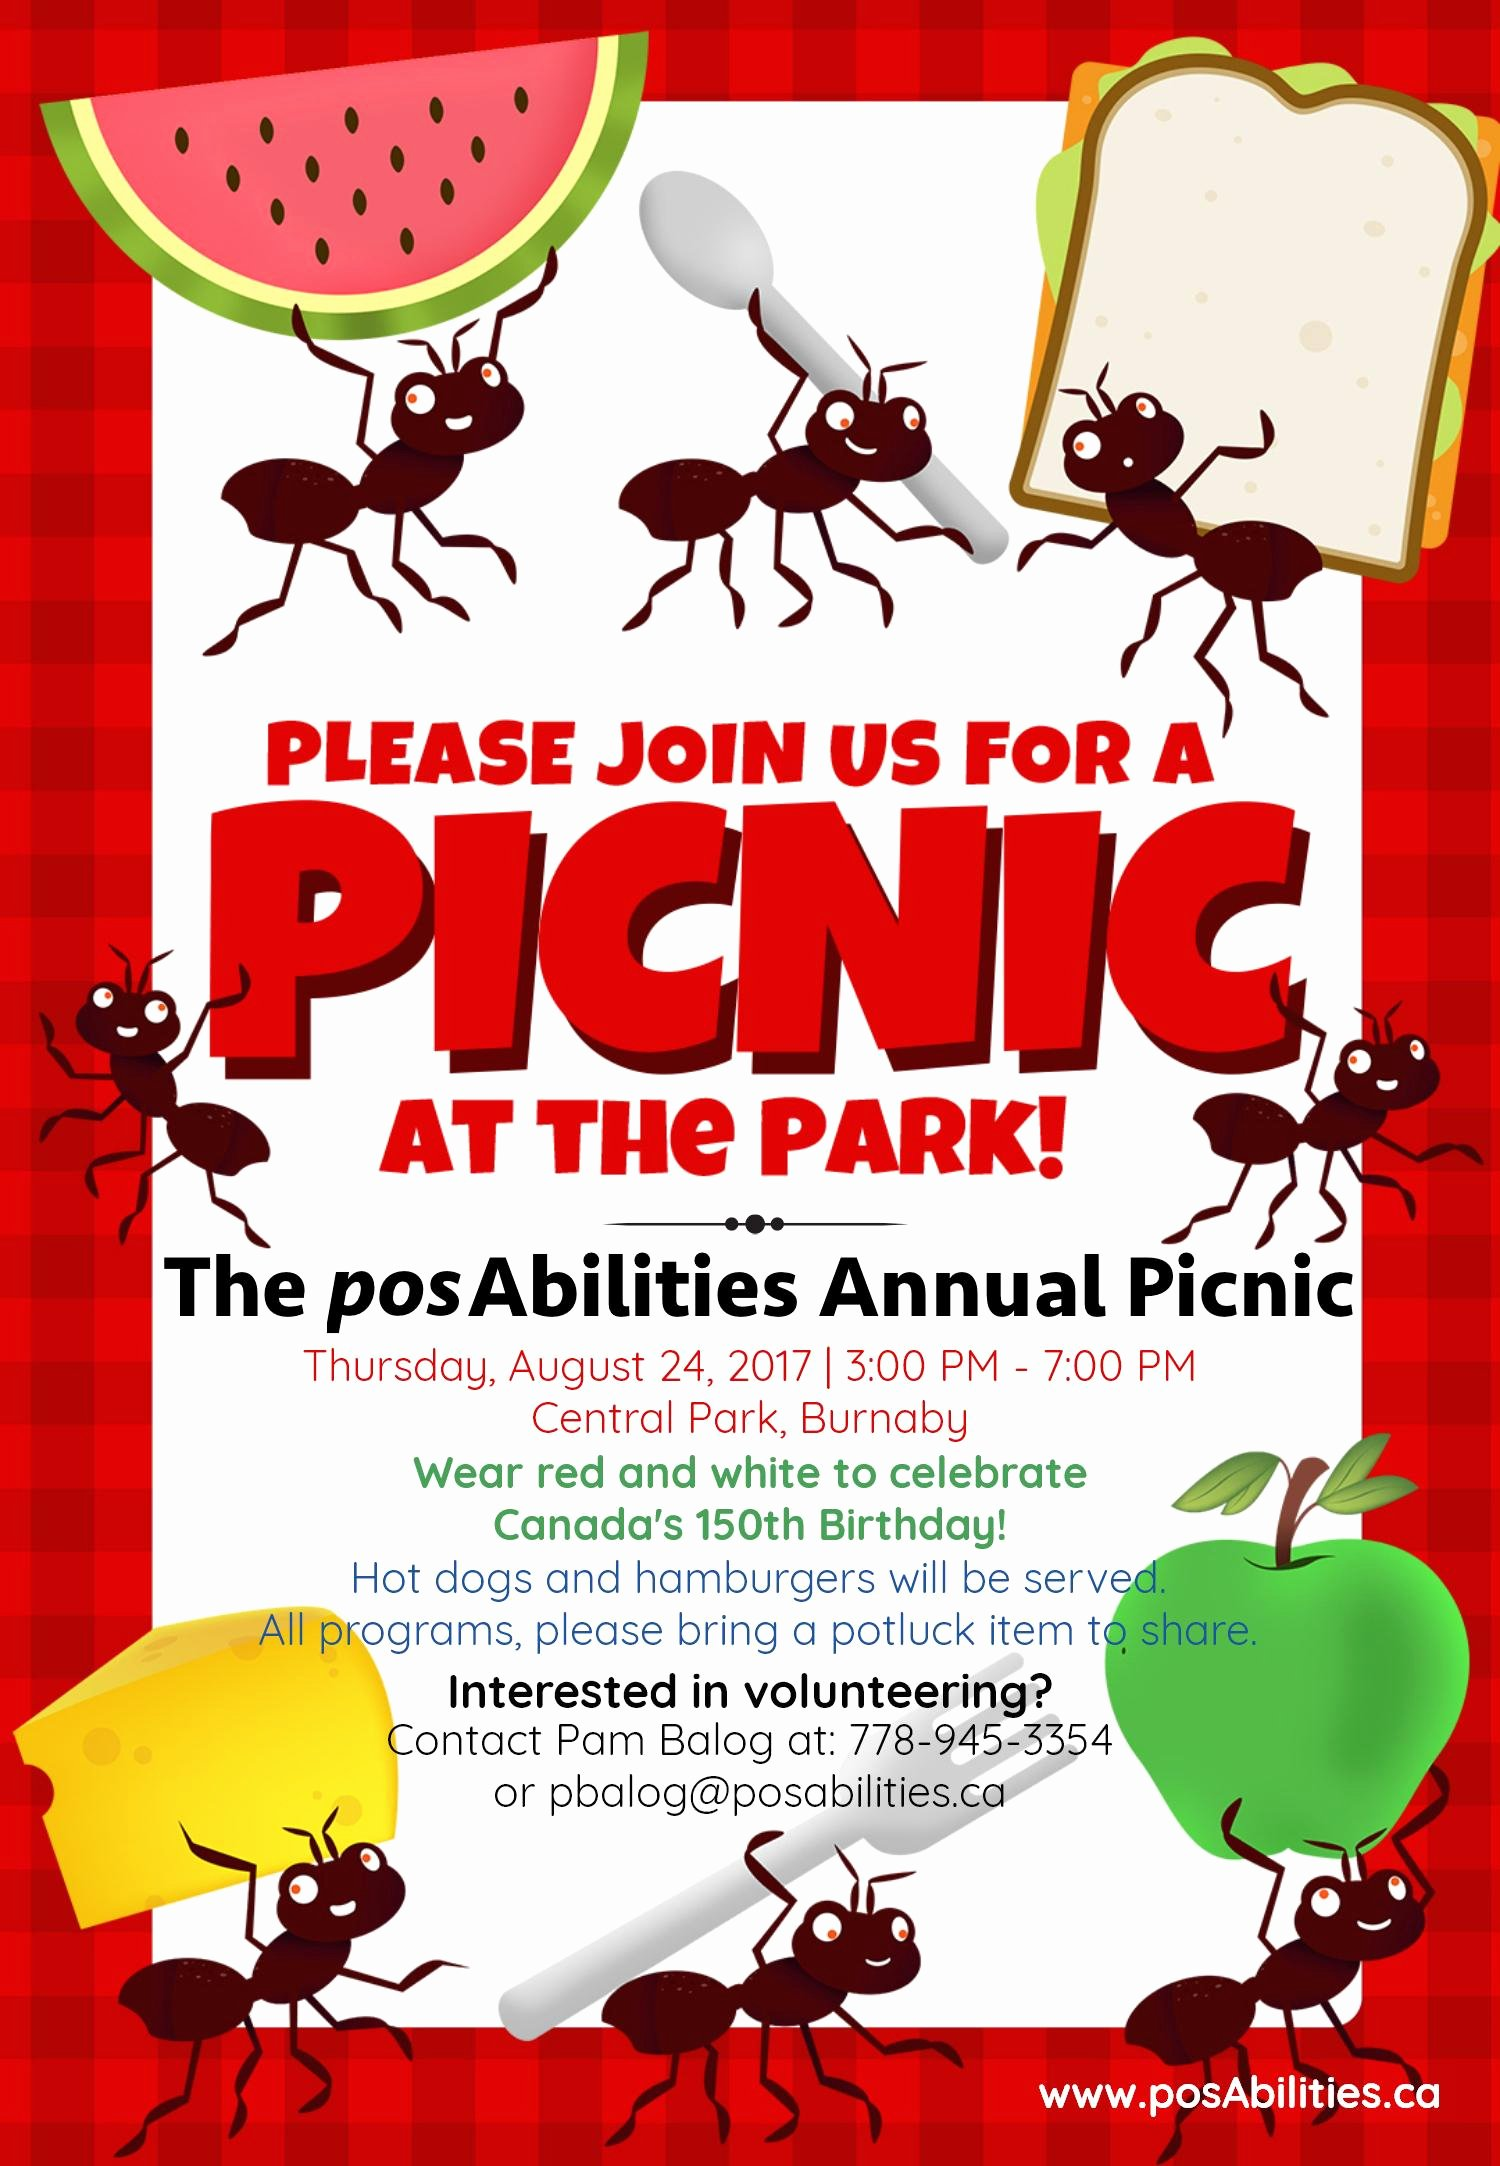 Picnic Invitation Templates Free Elegant Posabilities Annual Picnic at the Park Posabilities